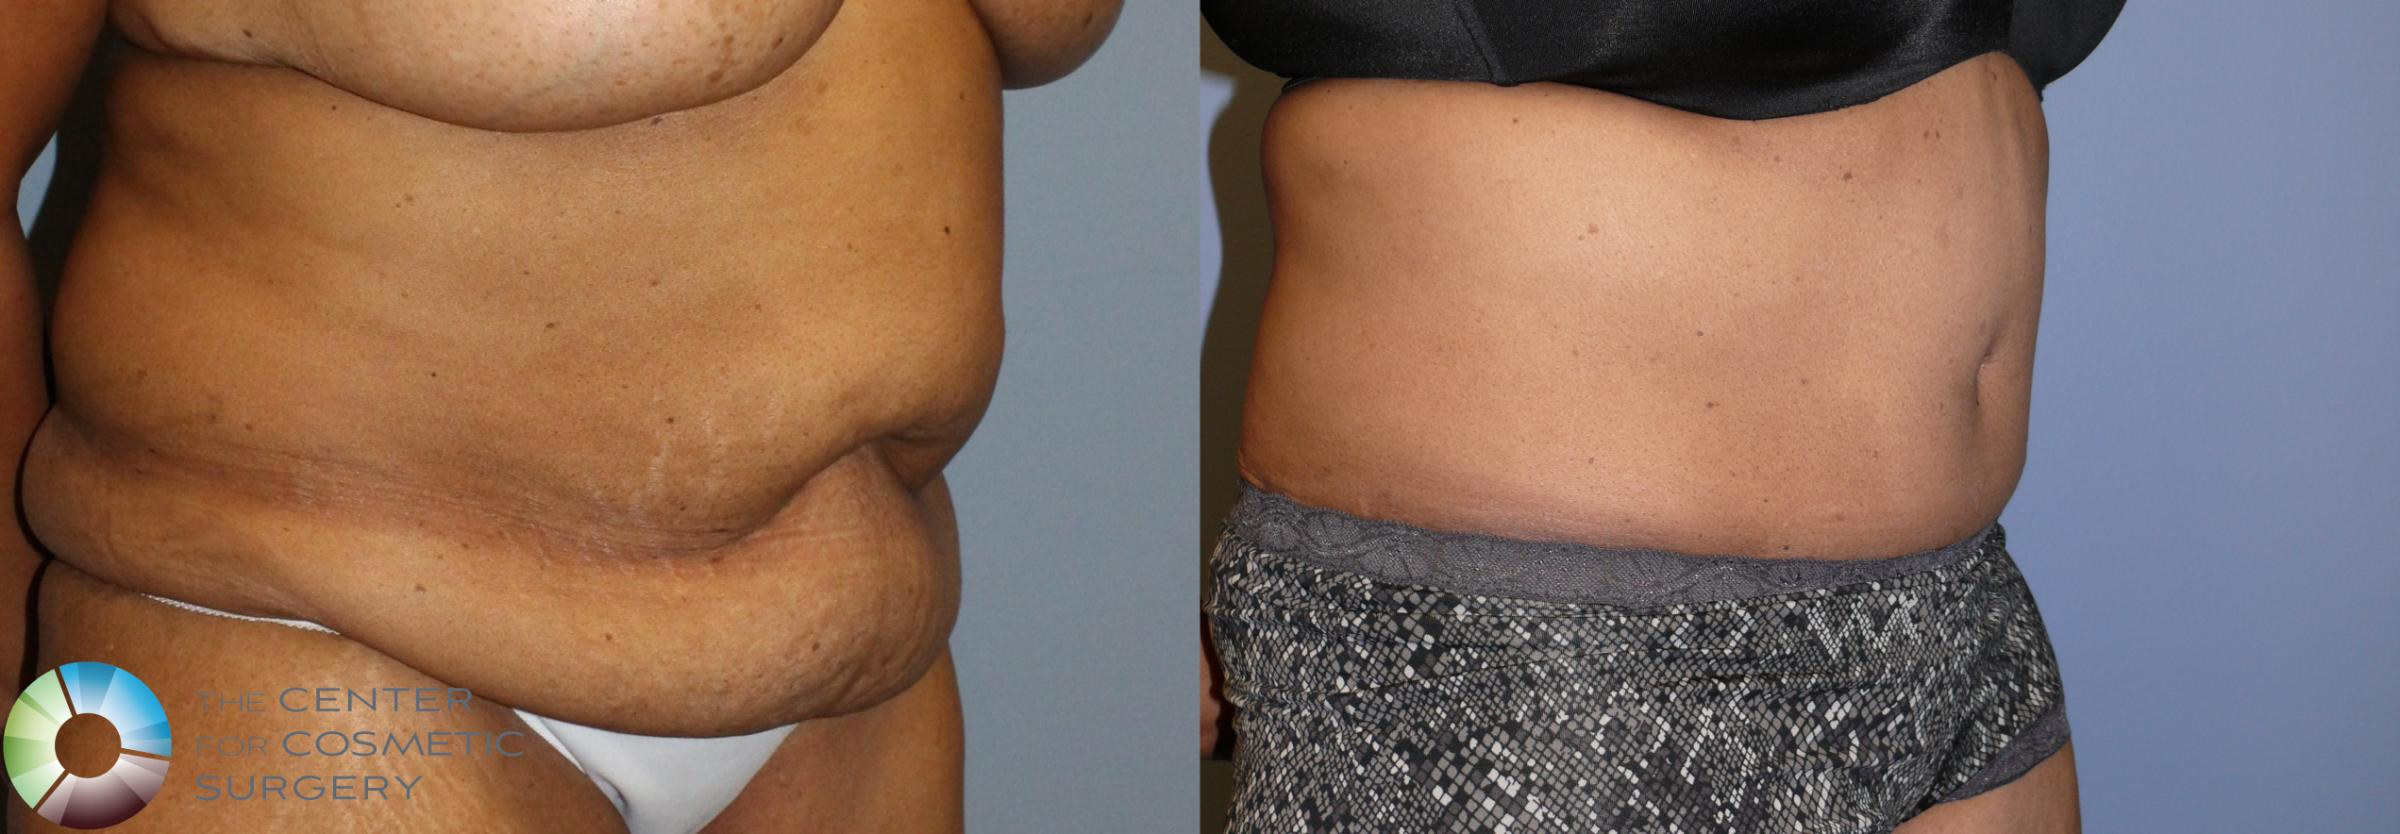 Tummy Tuck Case 923 Before & After View #2 | Golden, CO | The Center for Cosmetic Surgery